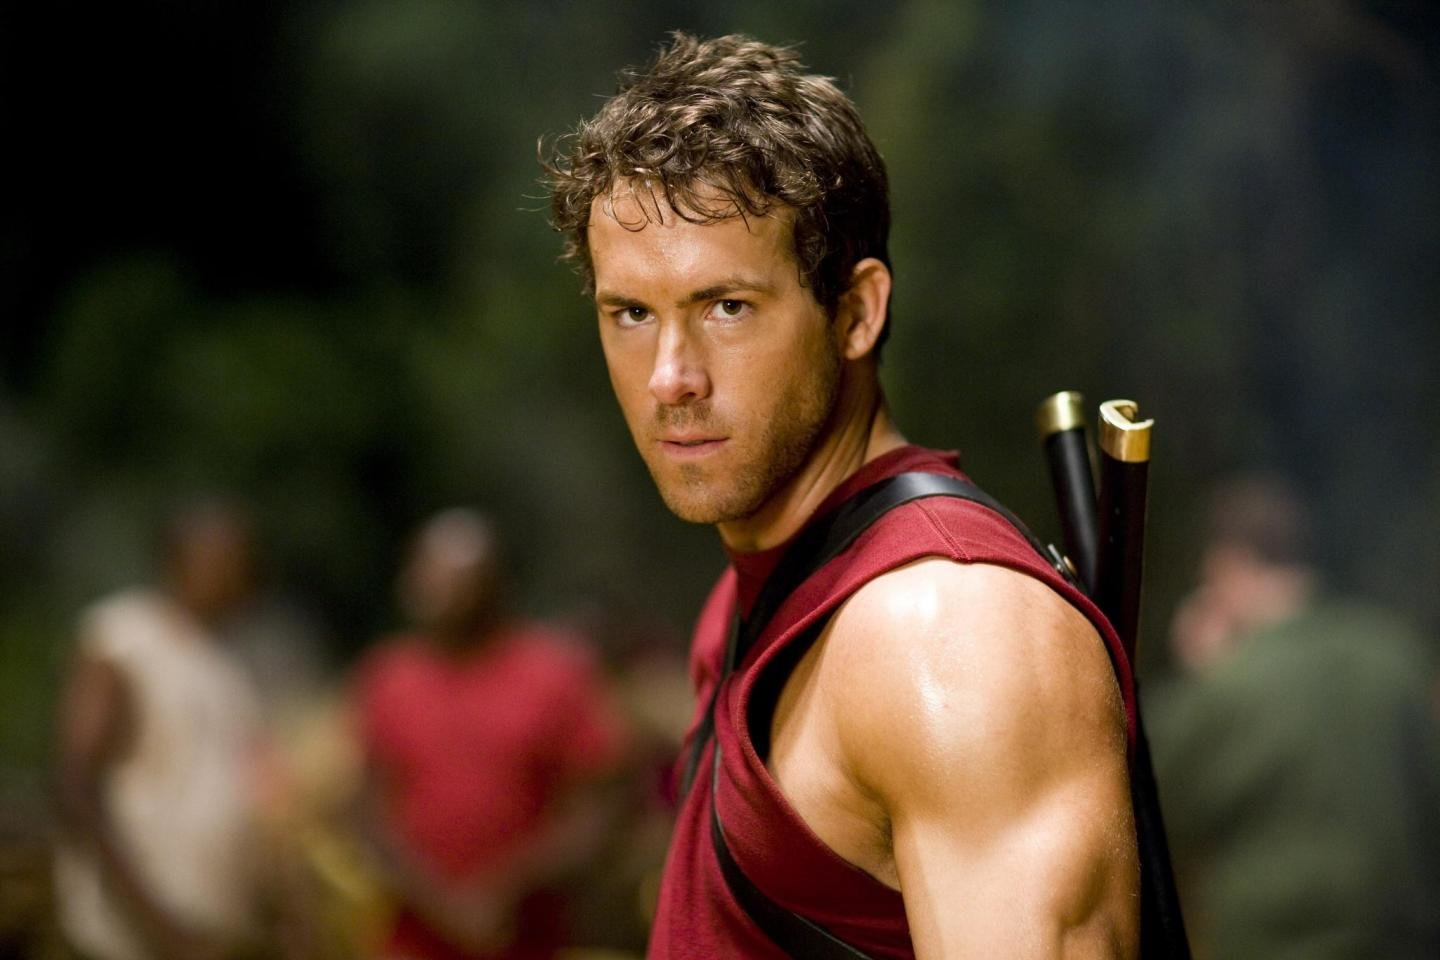 Free Ryan Reynolds high quality background ID:117569 for hd 1440x960 computer